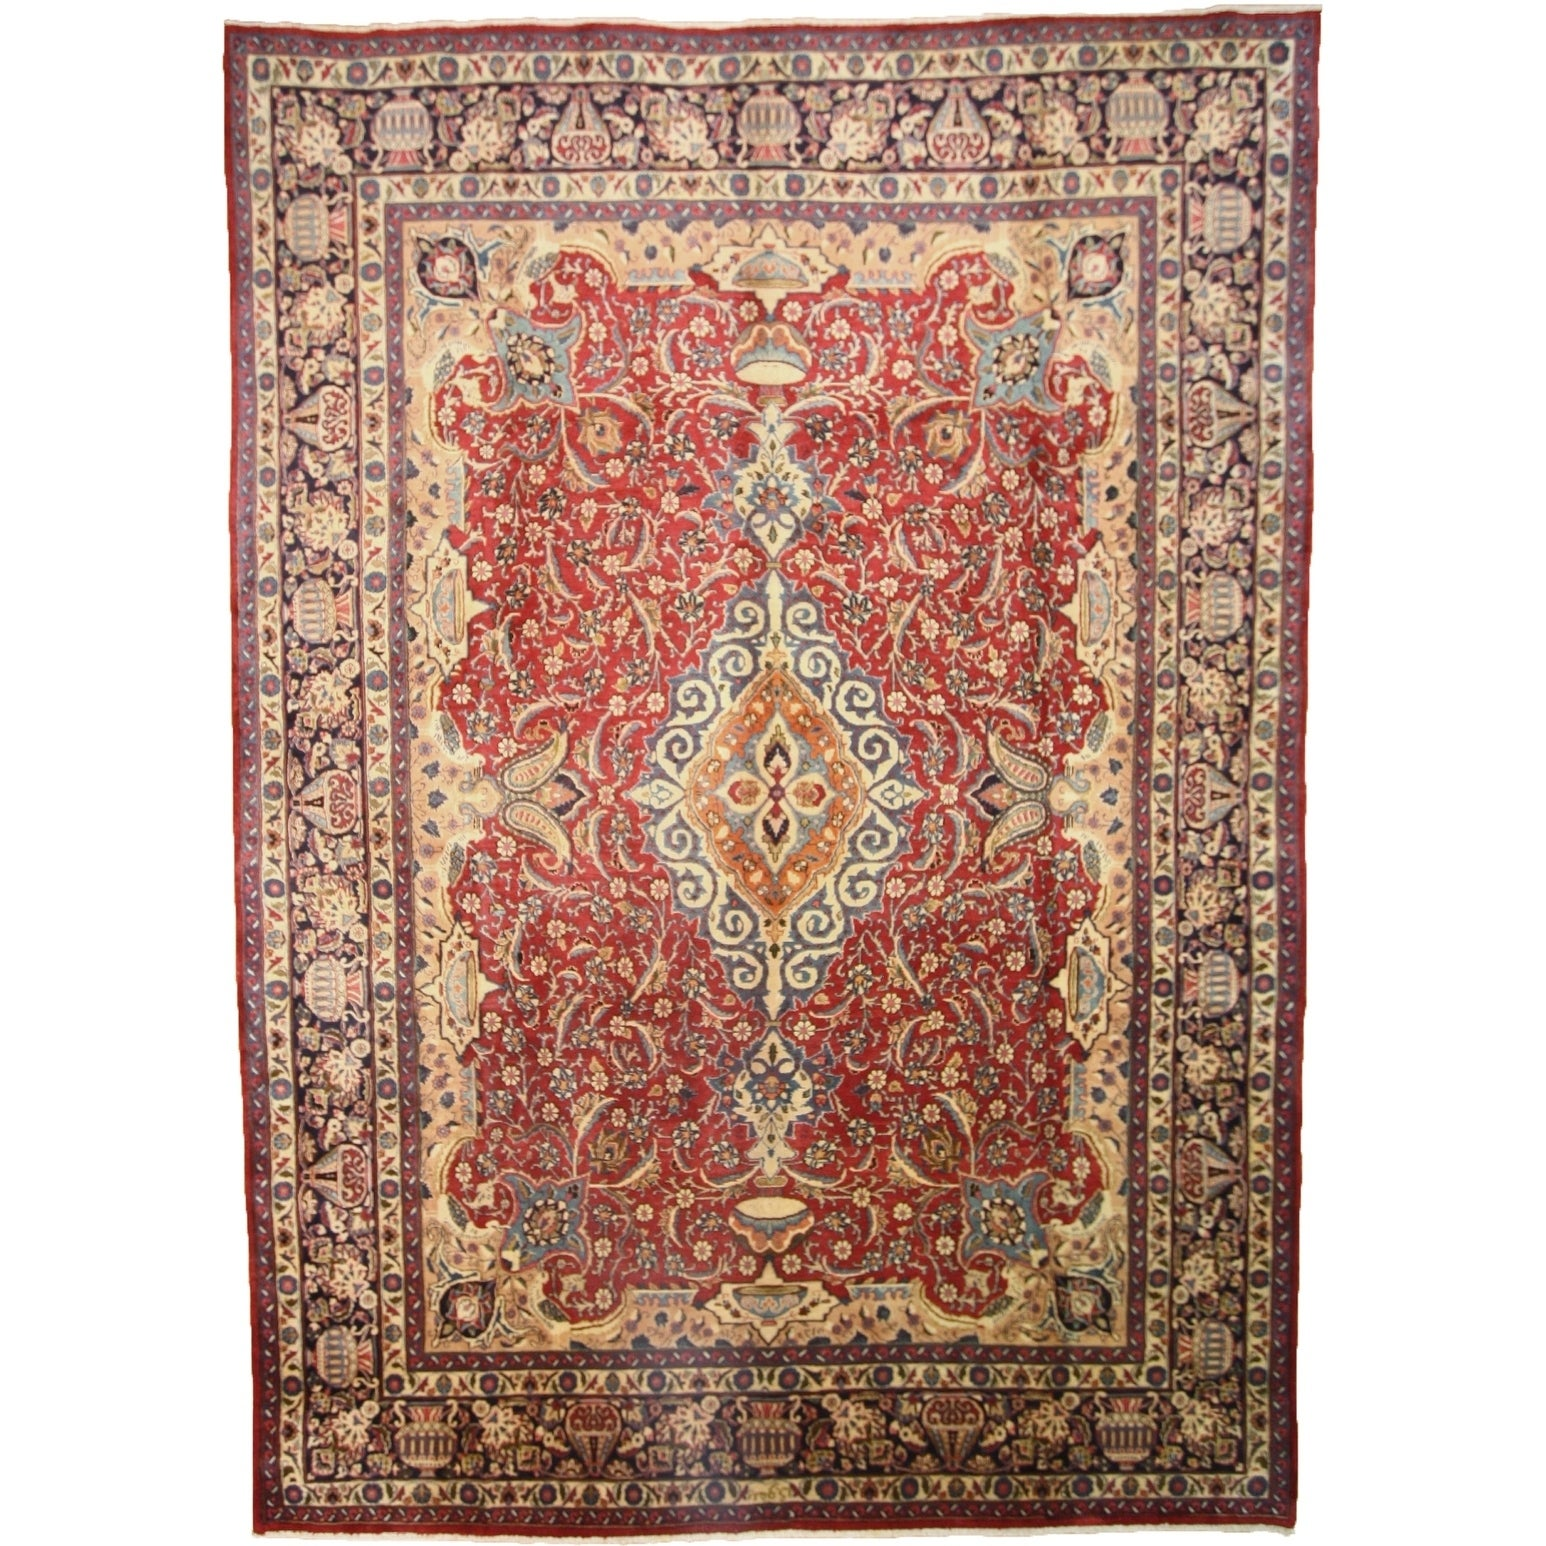 Hand Knotted Kashmar Semi Antique Wool Area Rug - 9 5 x 13 3 (Red - 9 5 x 13 3)